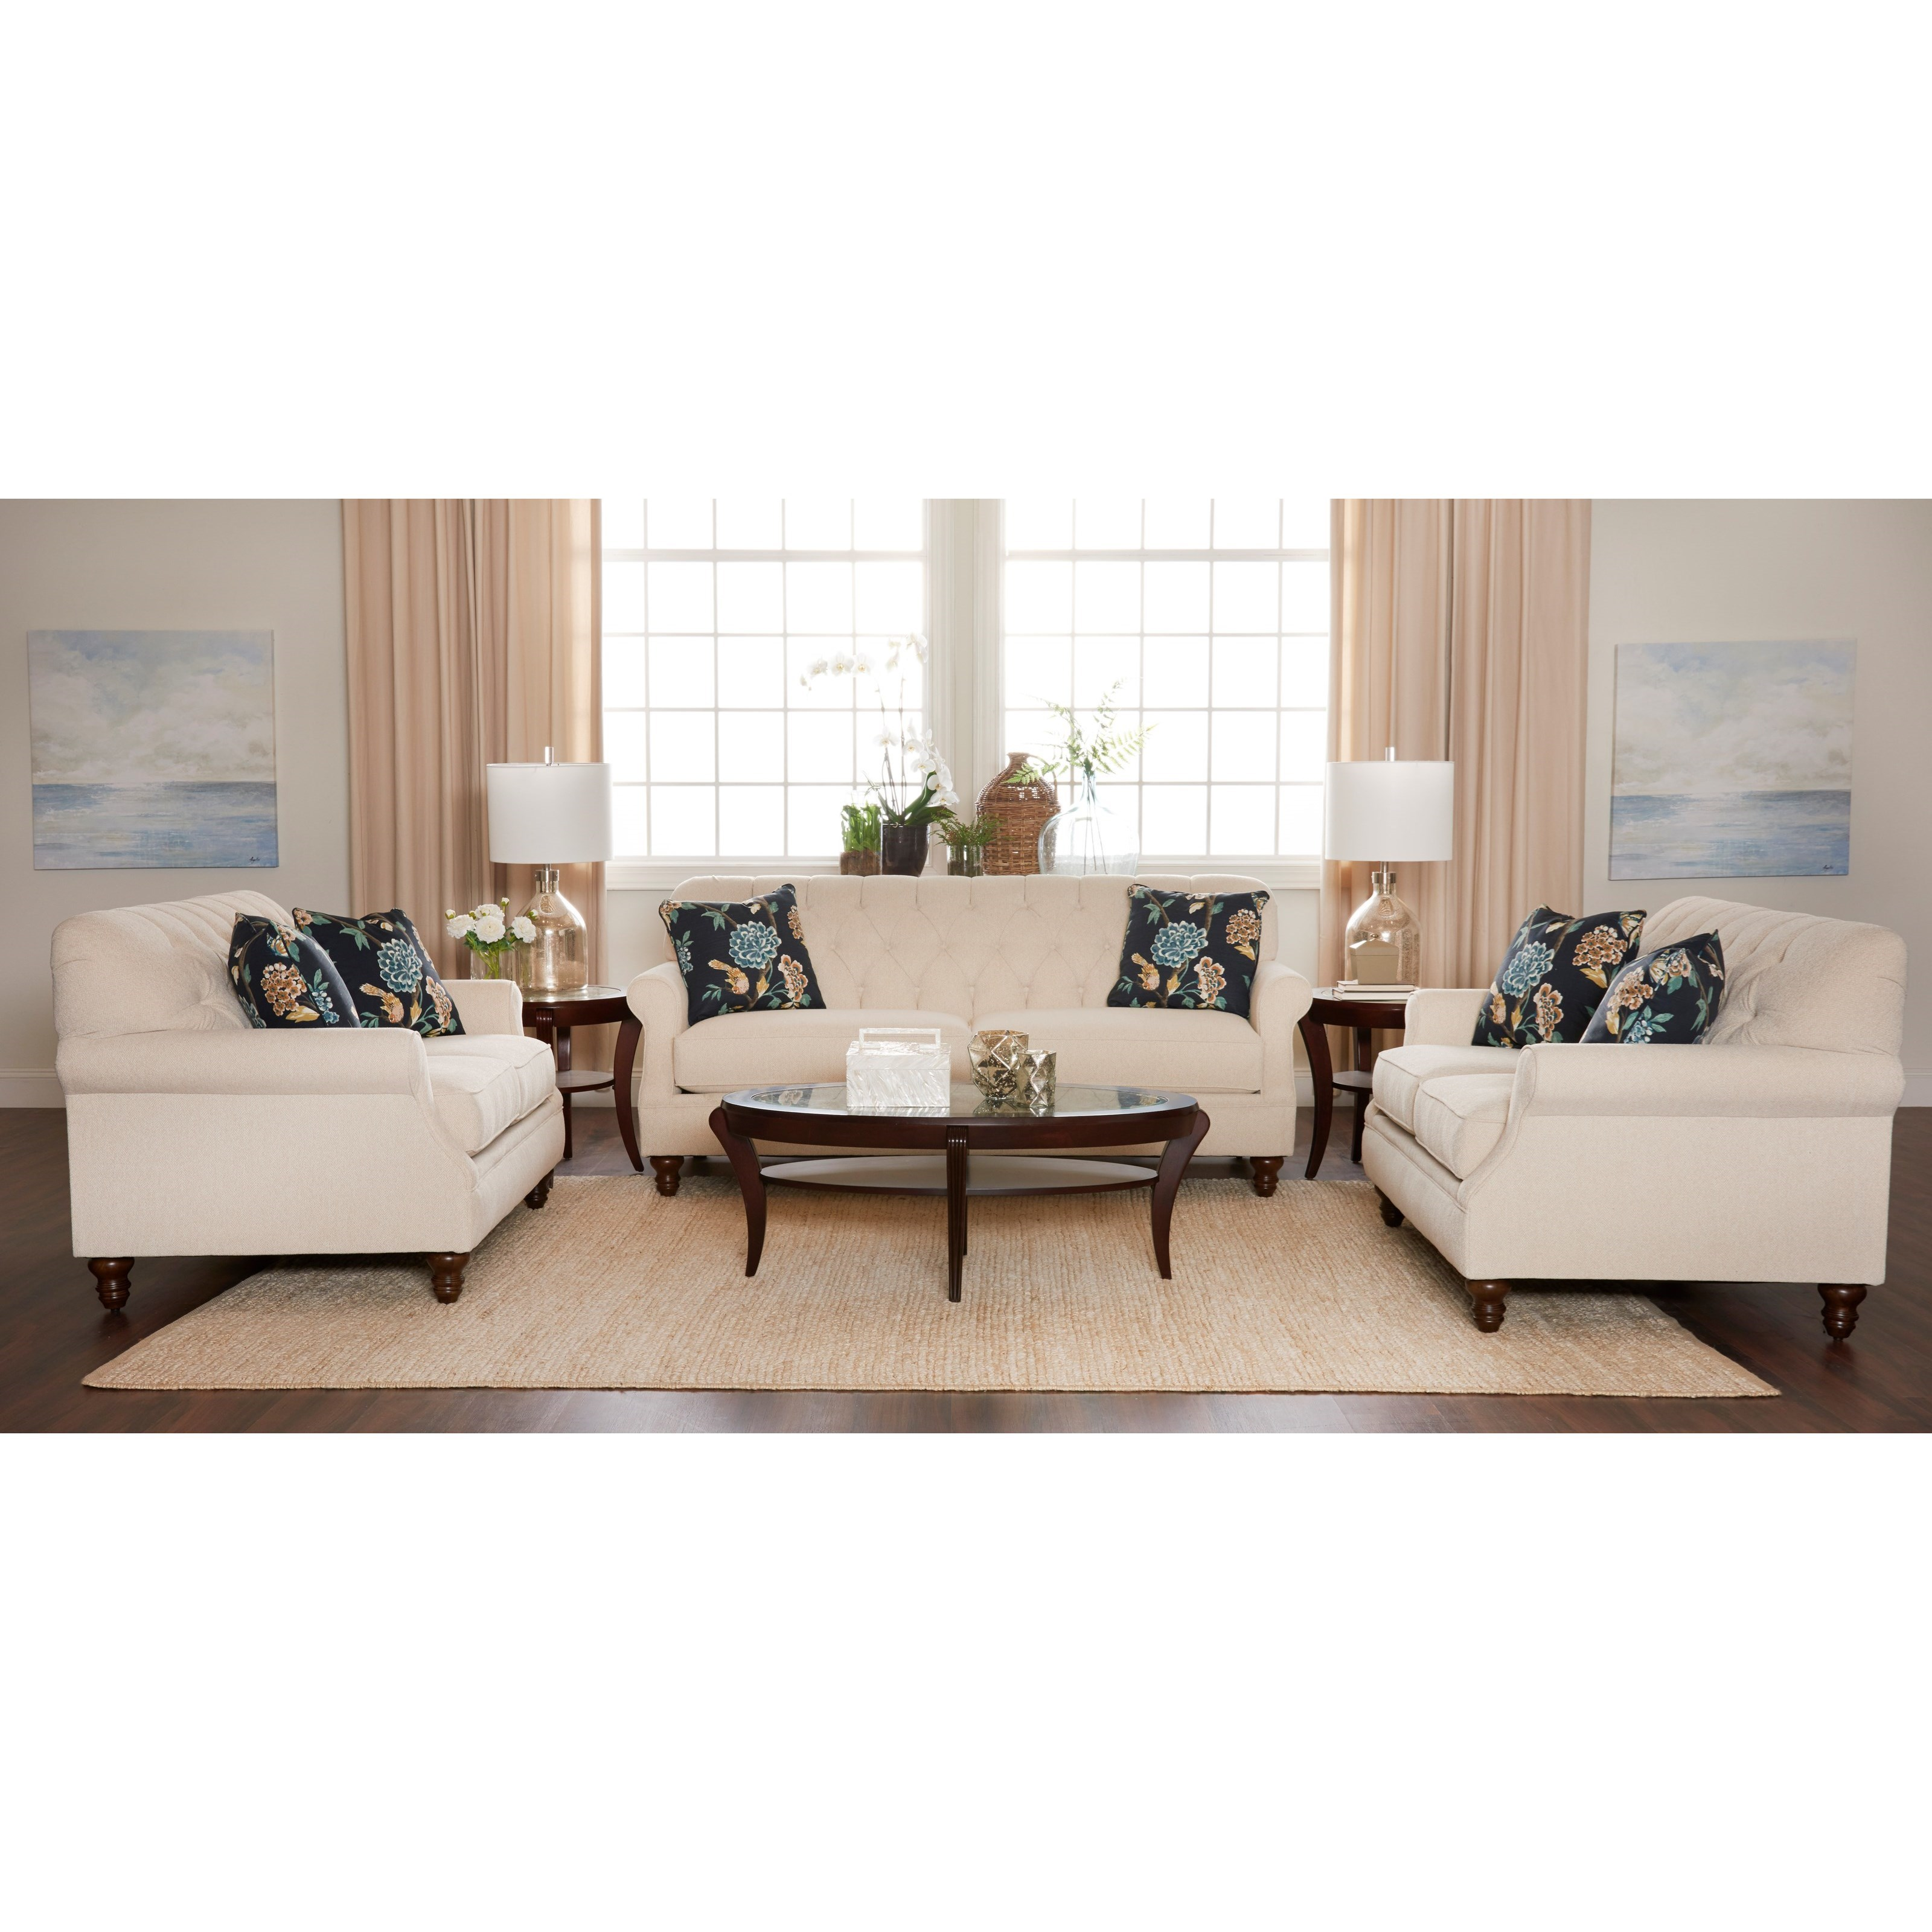 Burbank Living Room Group by Klaussner at Johnny Janosik